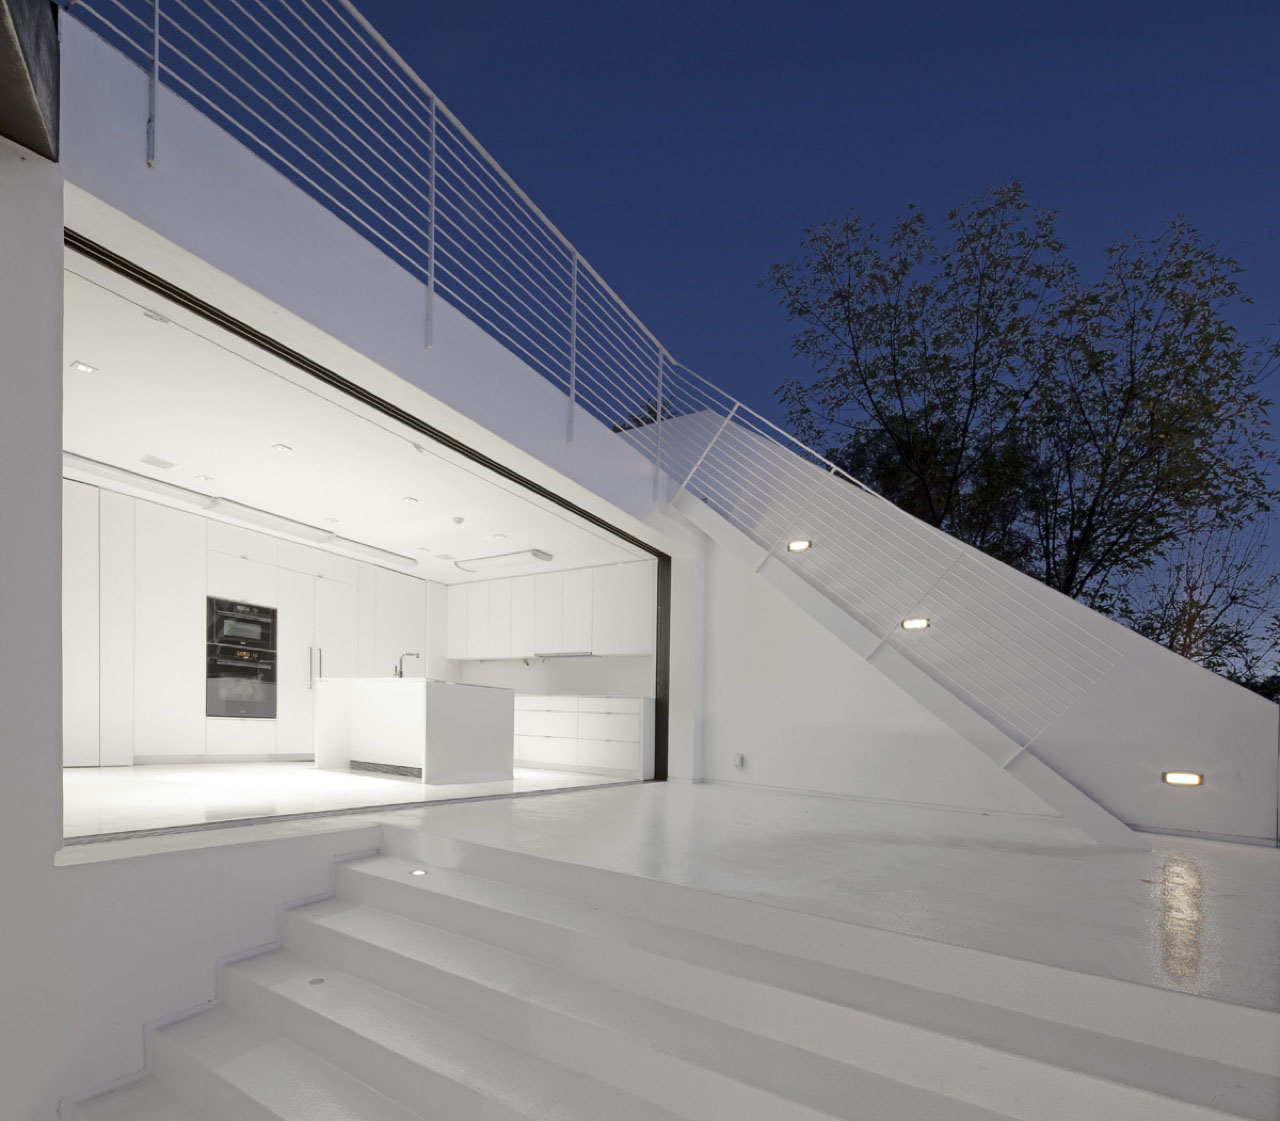 Abstract minimalist house in hollywood hills idesignarch for Minimalist house architecture